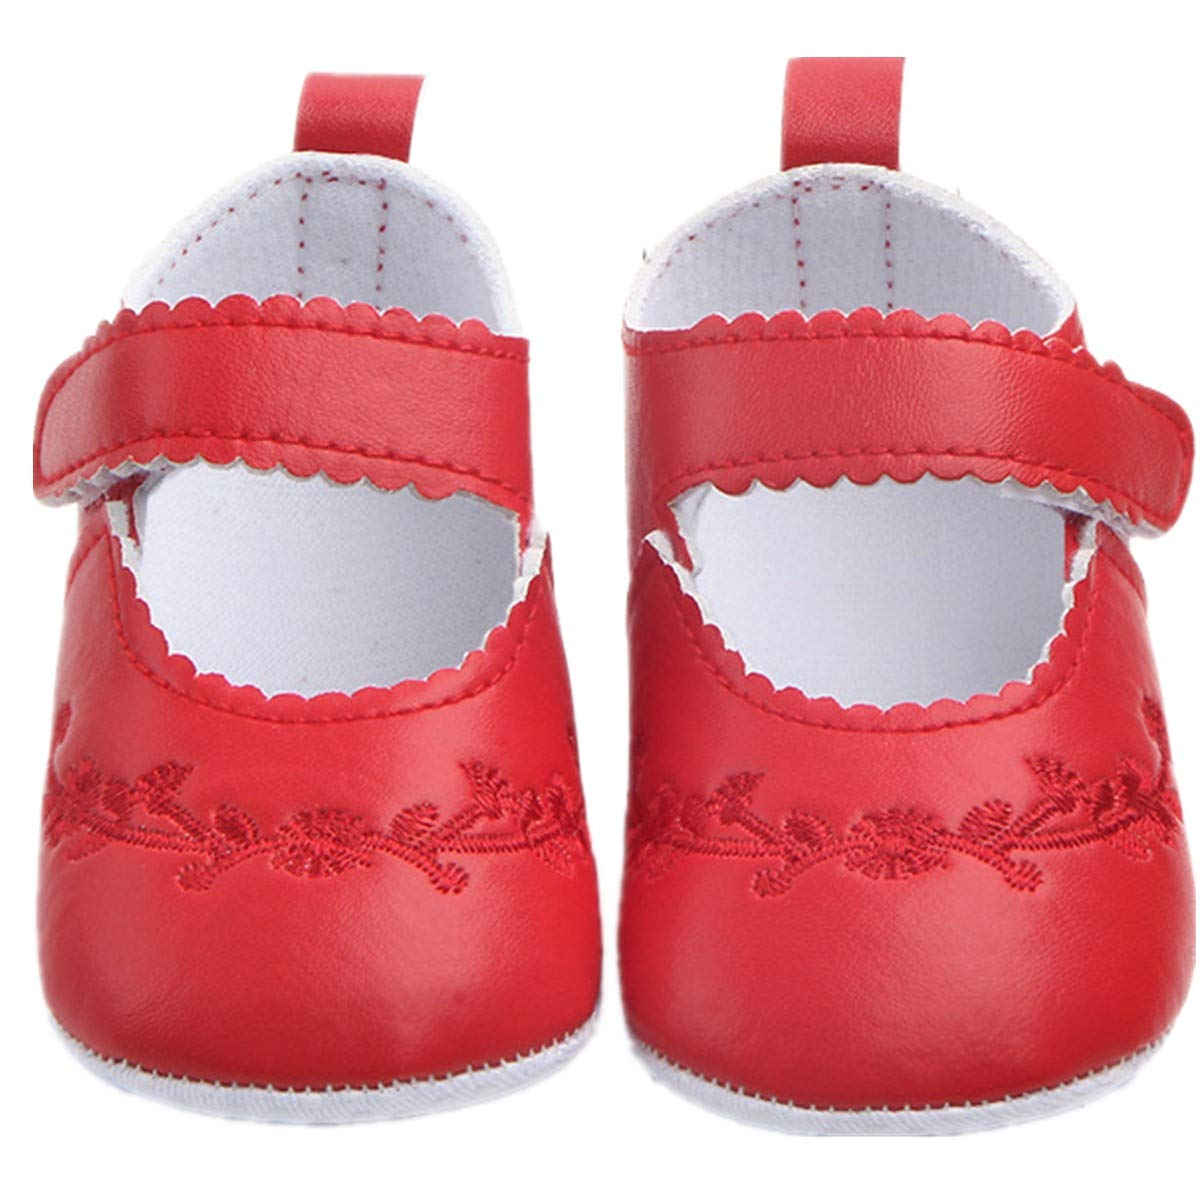 ADIASEN PU Leather Baby Embroidery Girl Shoes,Soft Non-Slip Toddler Shoes Infants Shoes,Newborn Shoes Baby Girl,Spring//Fall Baby Shoes